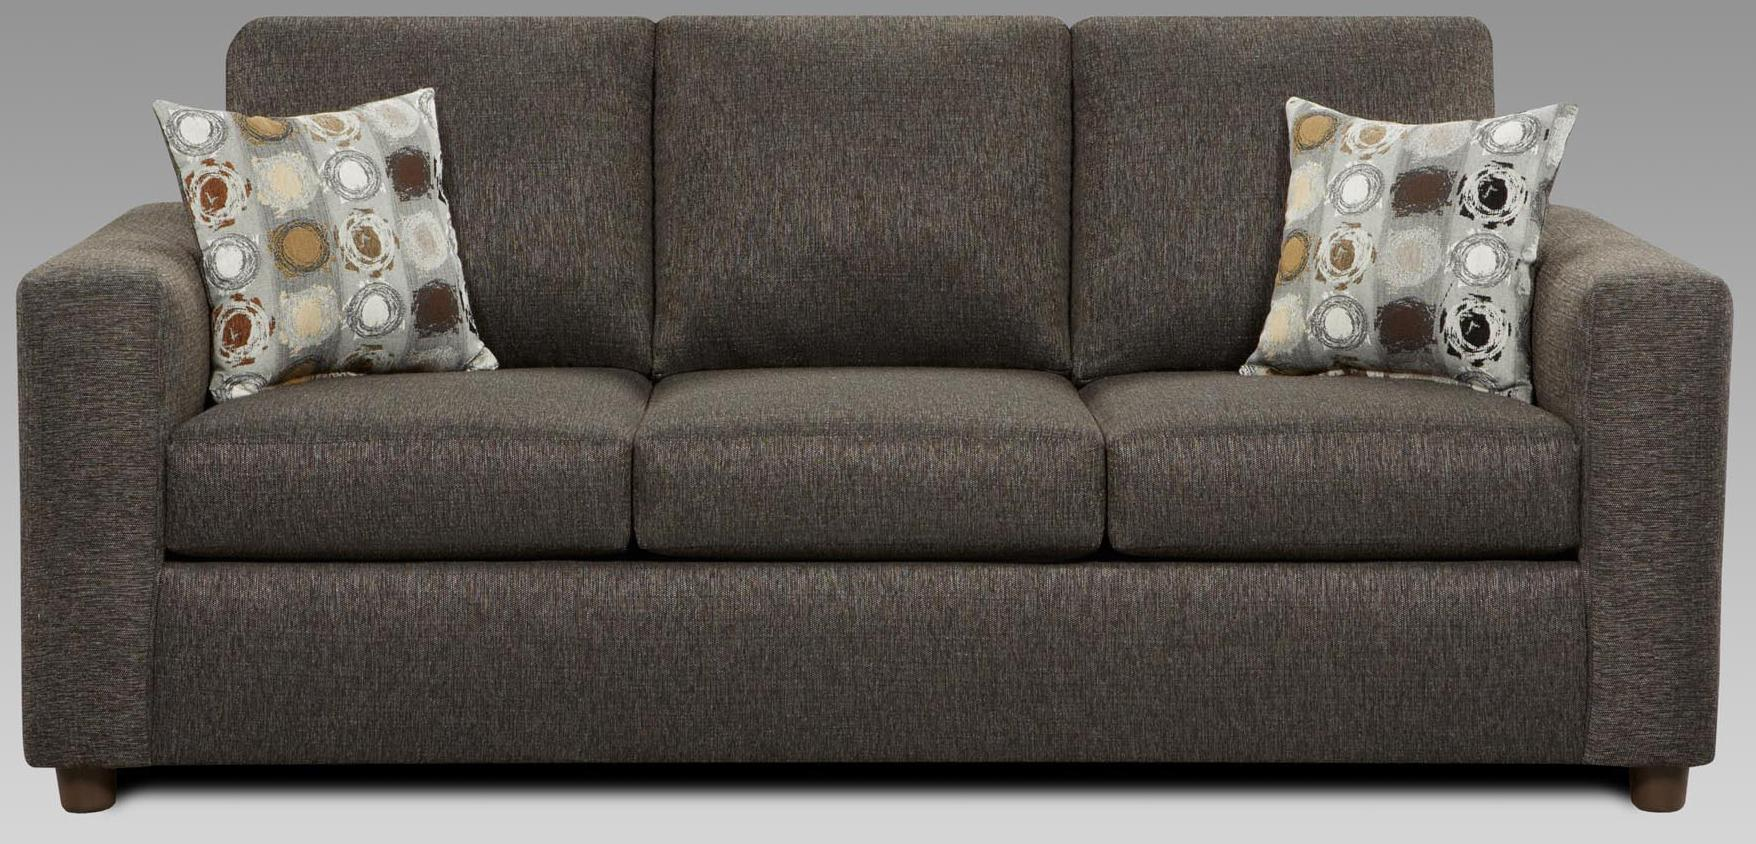 Stationary sofa 3600 by affordable furniture wilcox for Affordable furniture number